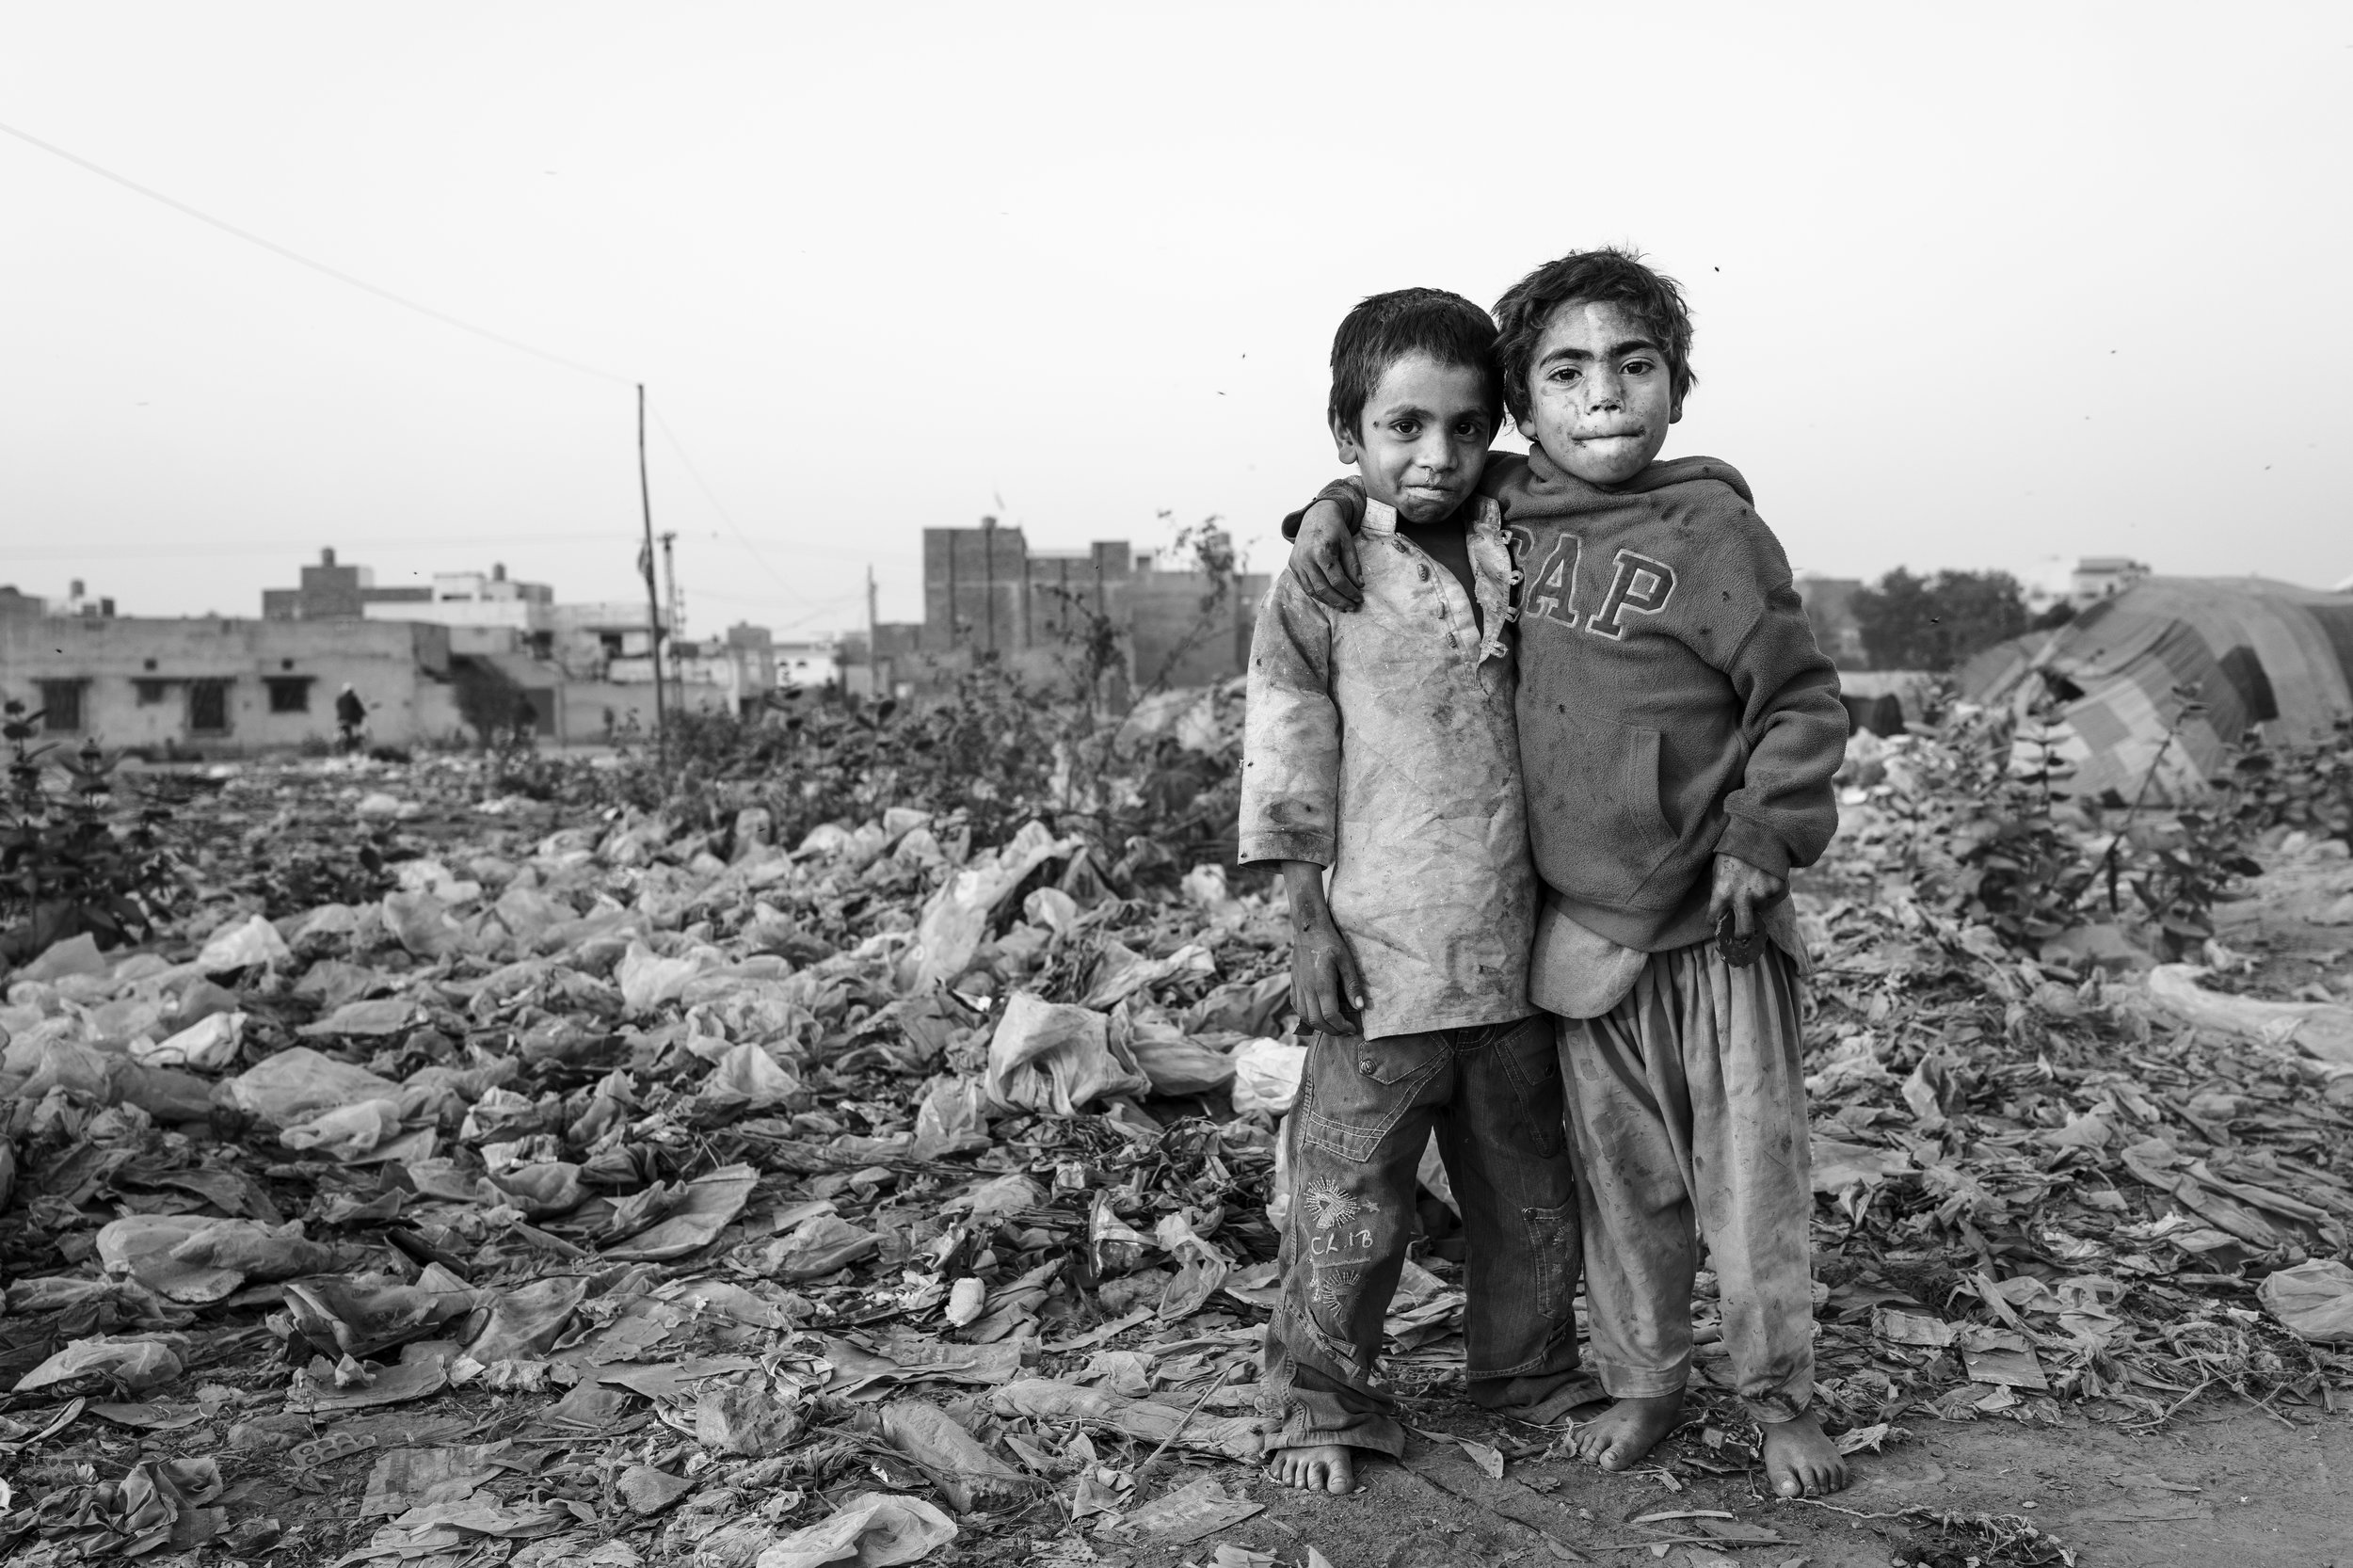 Kids at a dumping site, Sahiwal, Pakistan